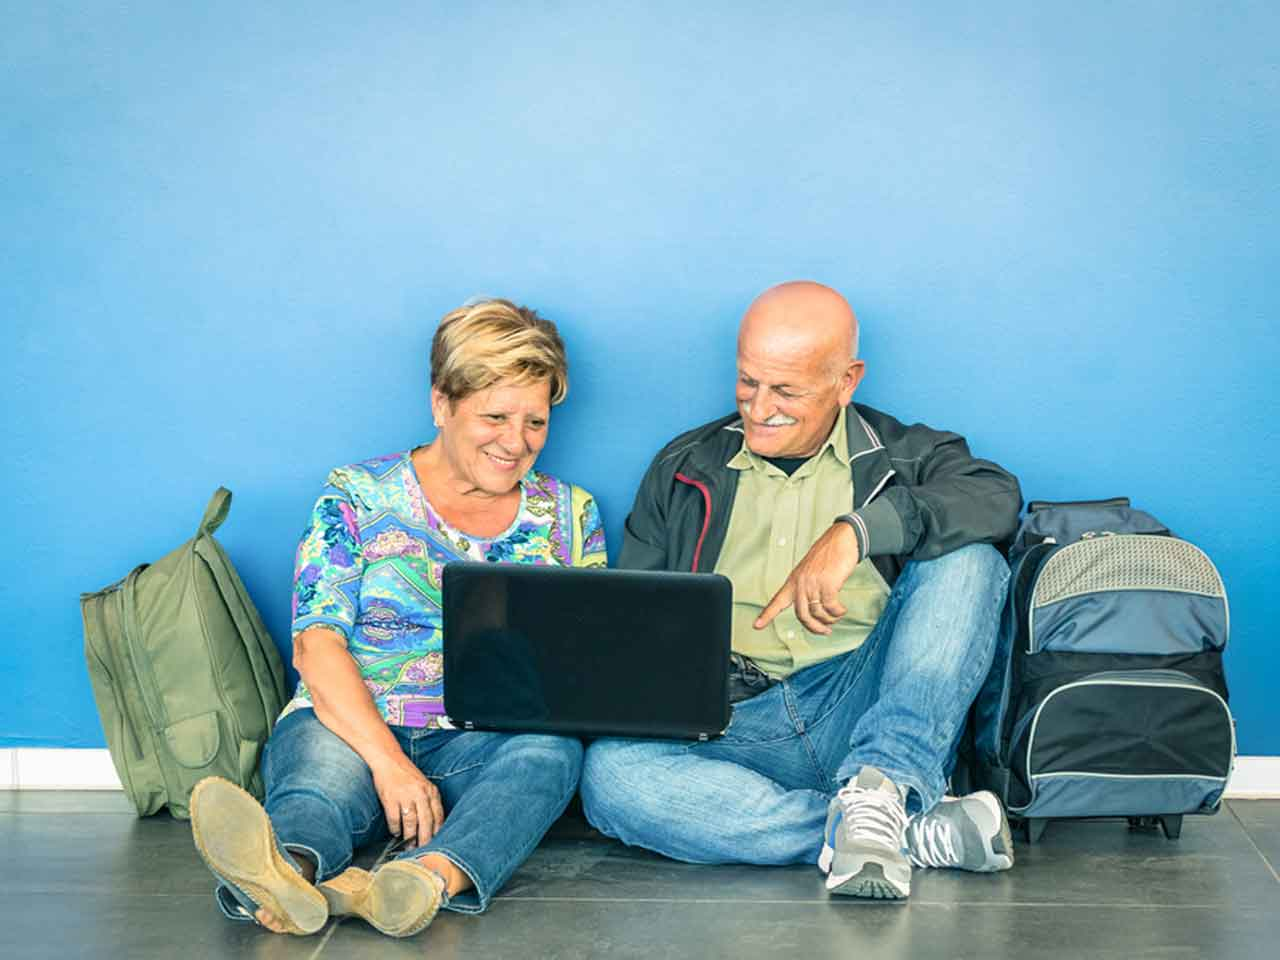 Over 50s at an airport gathering travel tips on a laptop